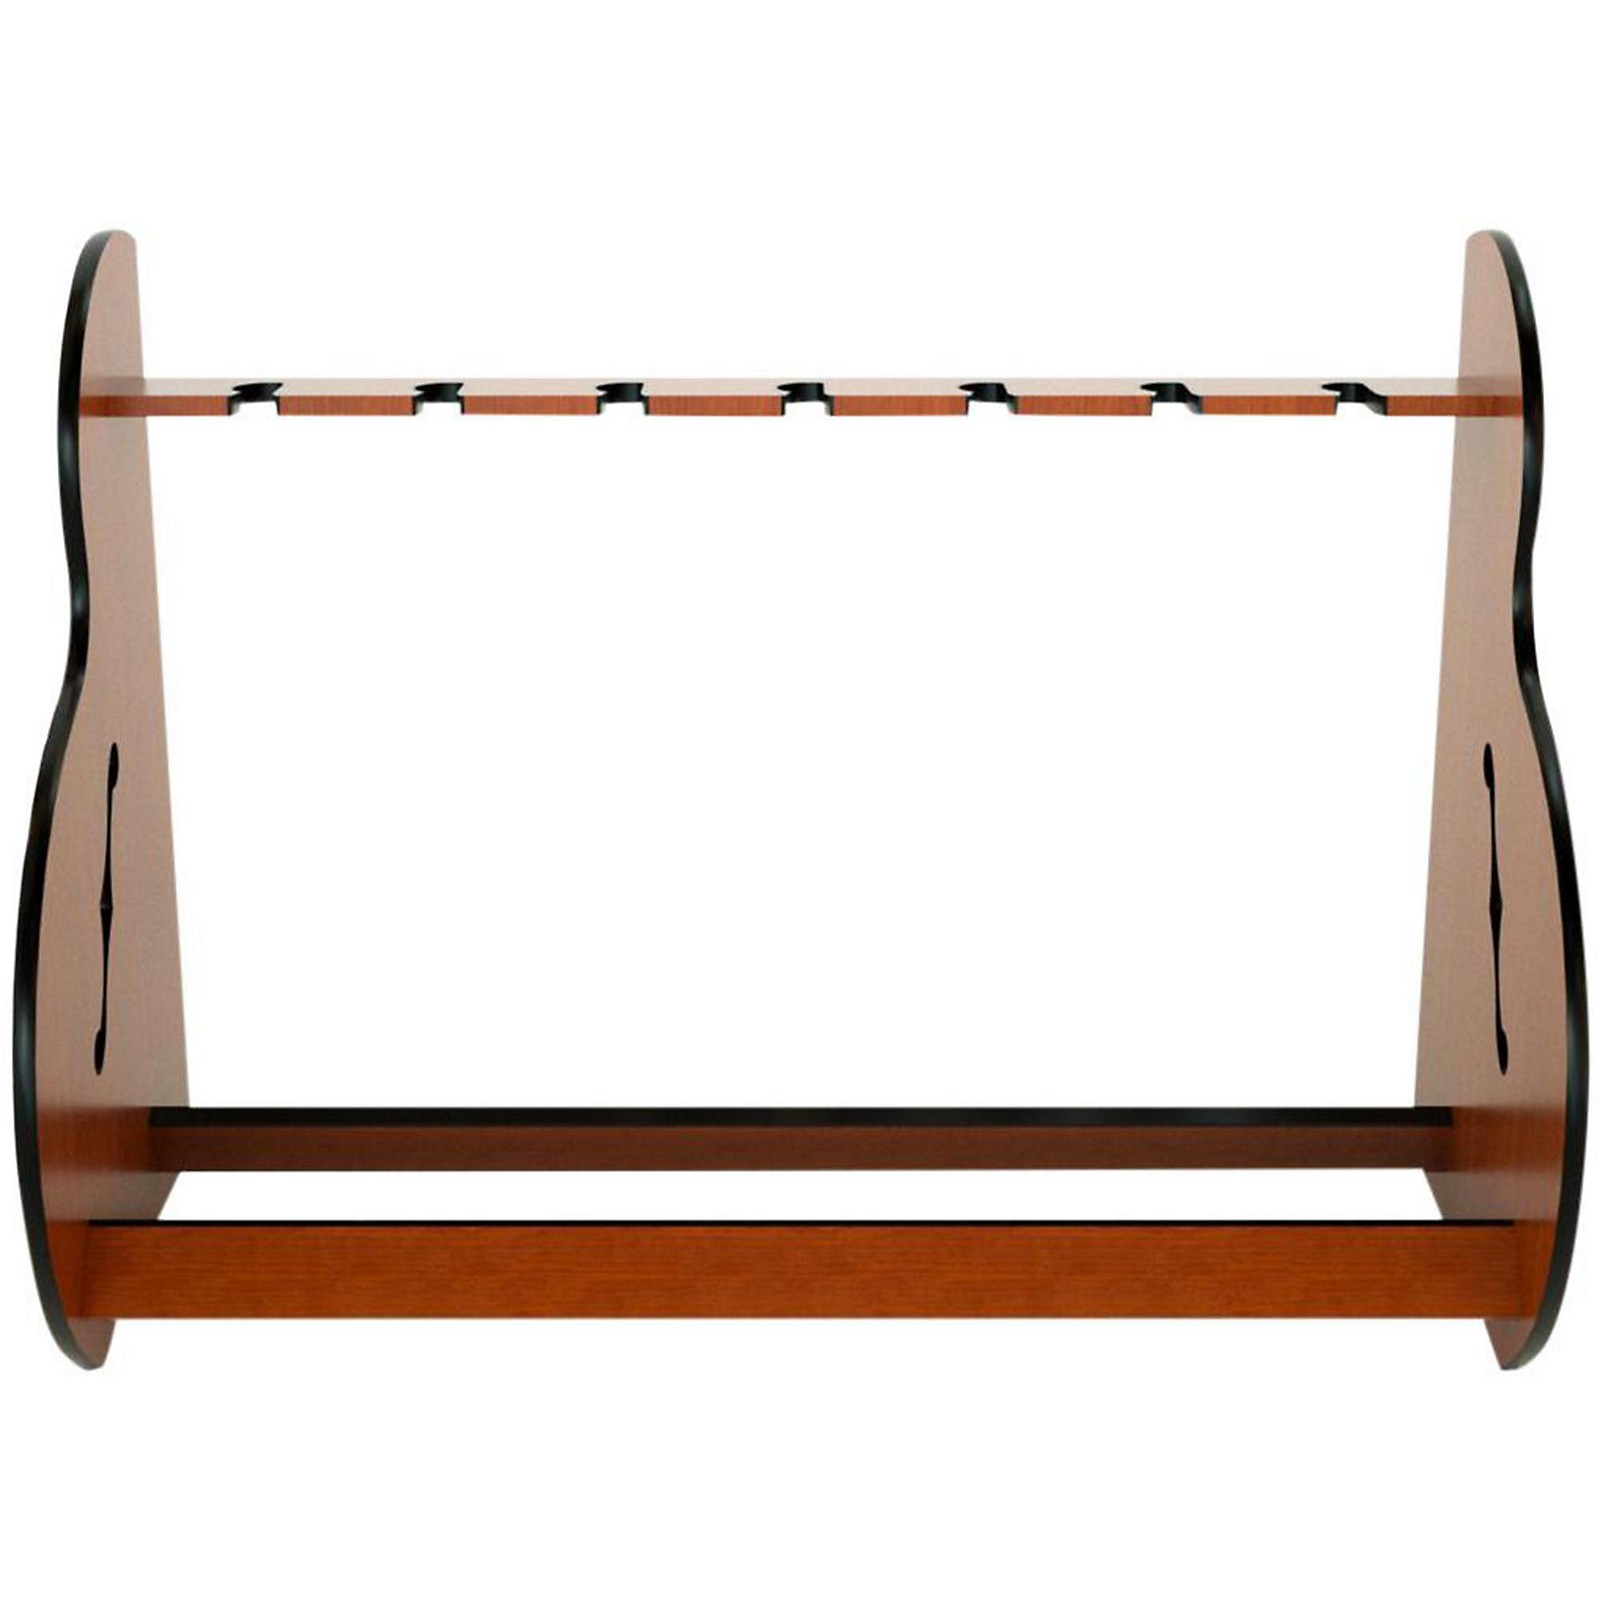 A&S Crafted Products Session Standard Guitar Stand